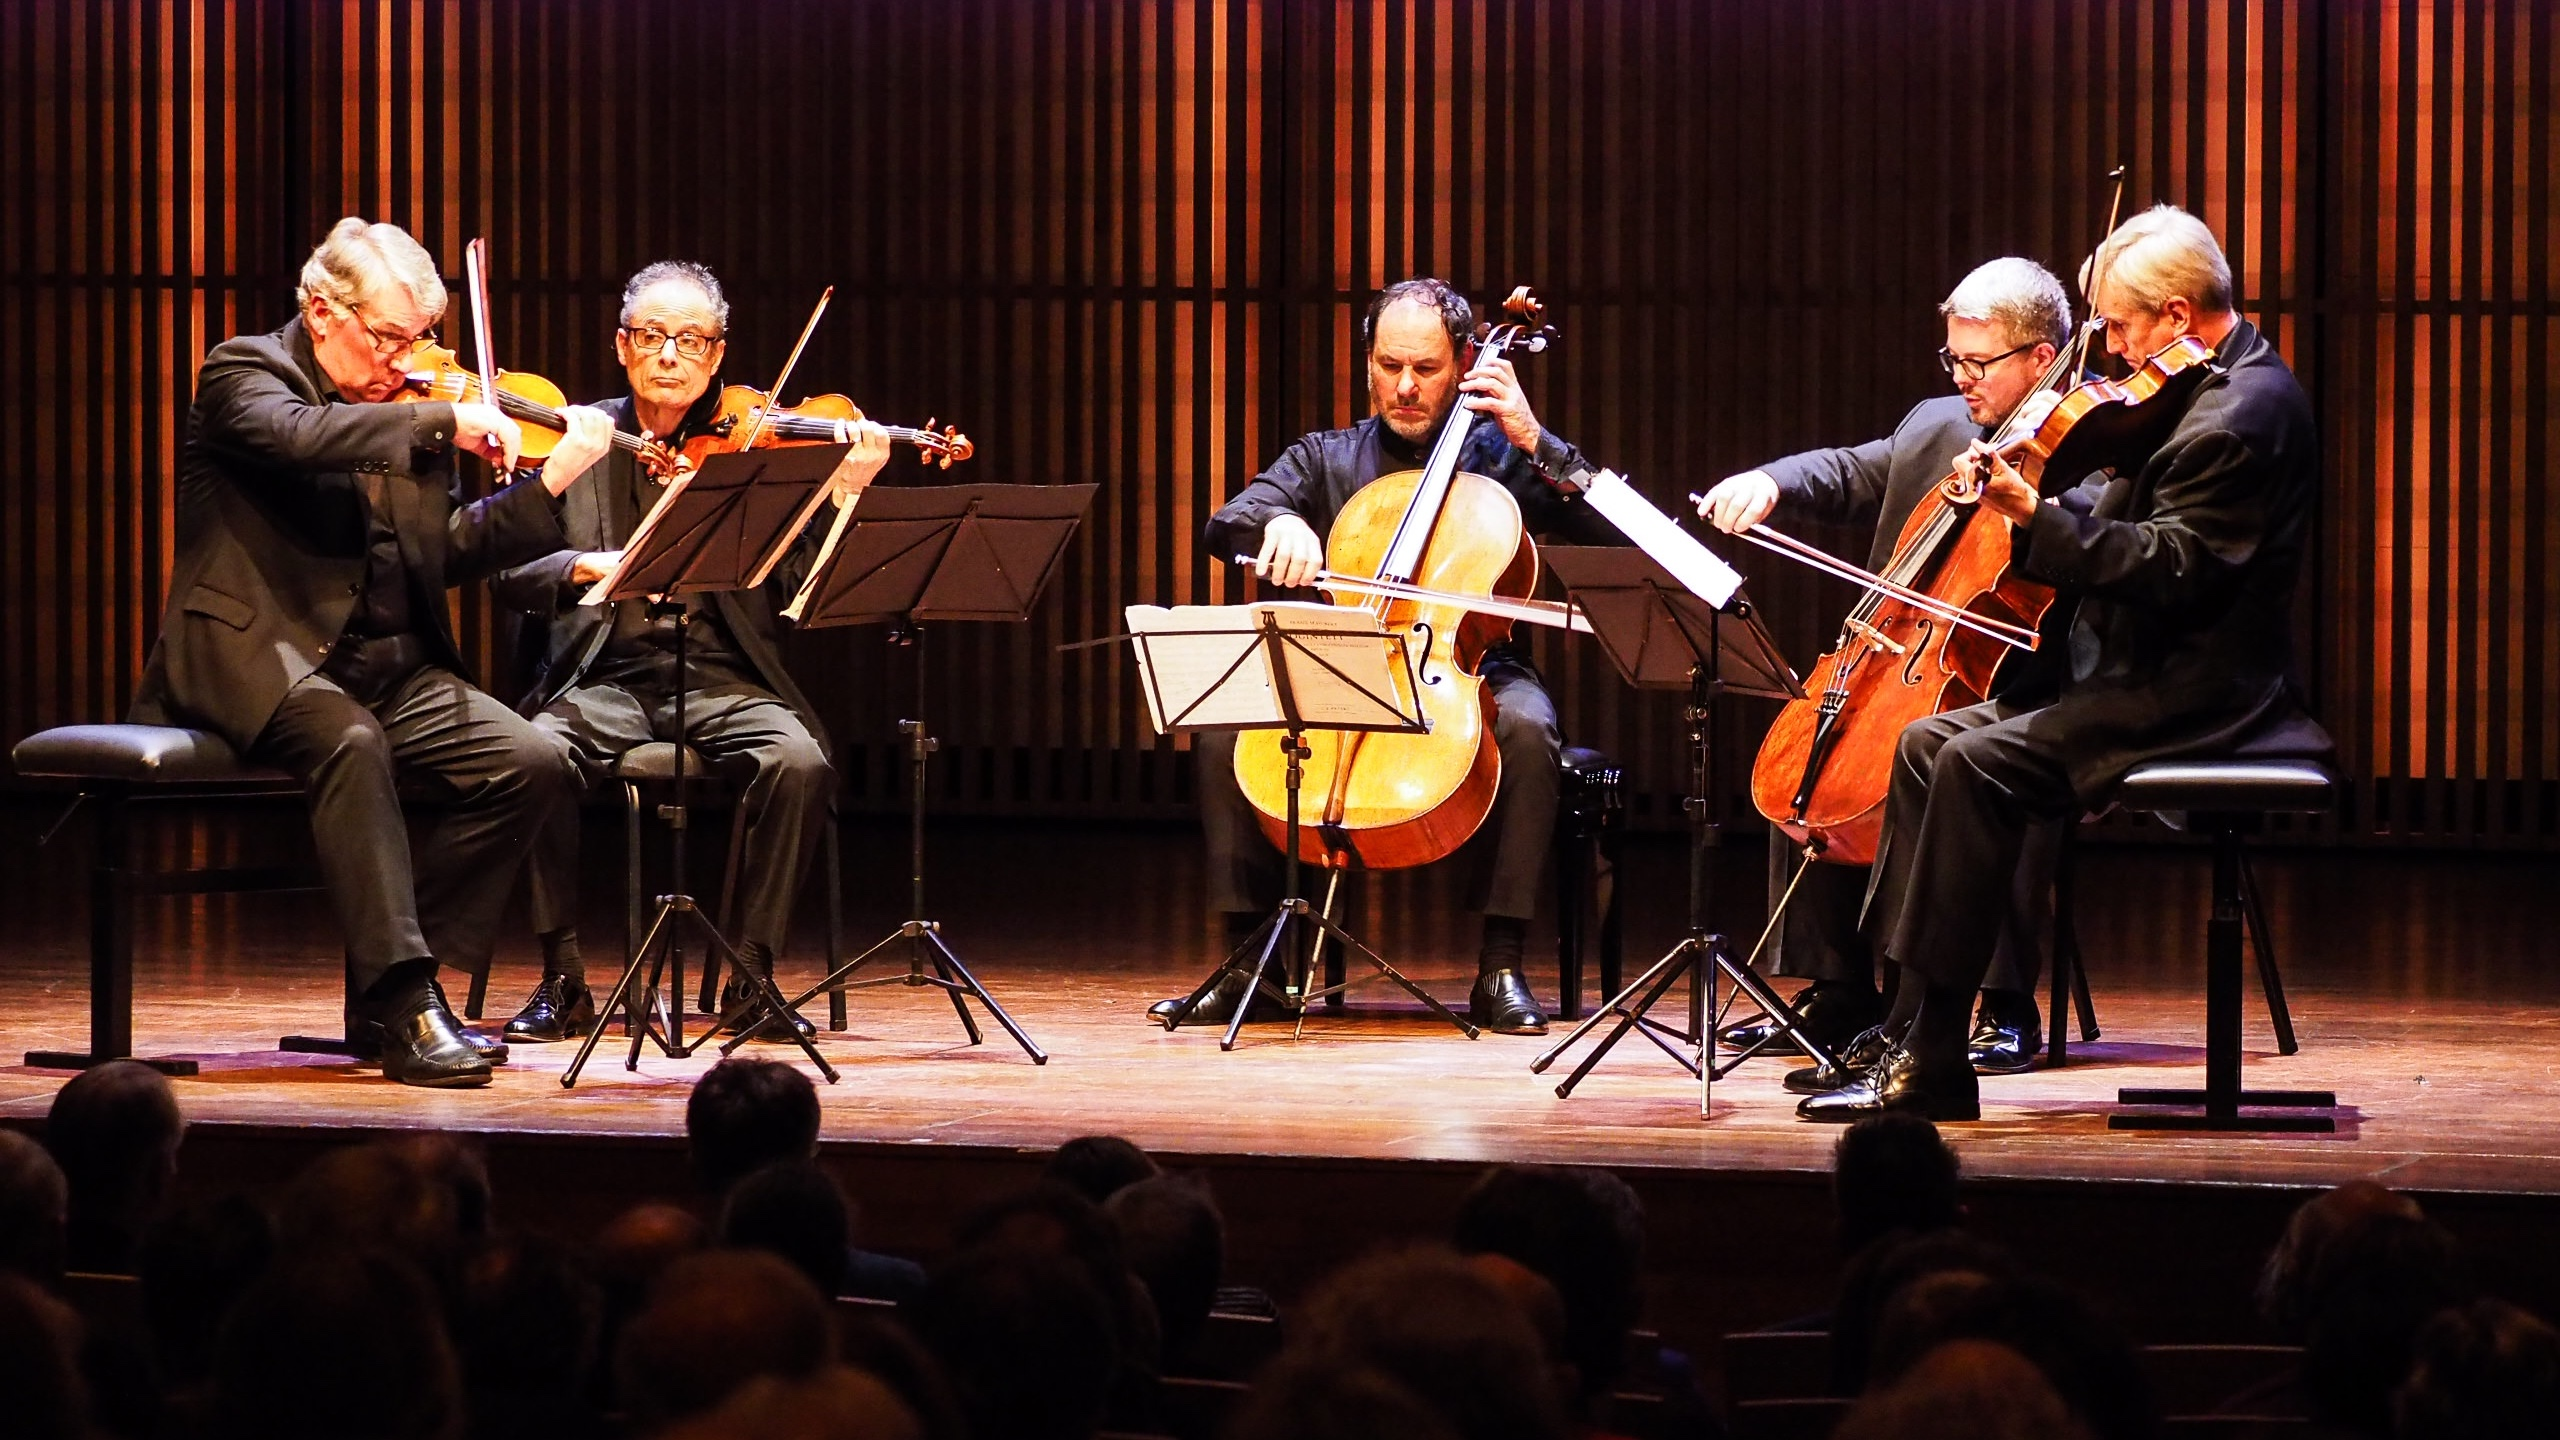 String Quartet Biennale Amsterdam (SQBA) opens with charisma and color